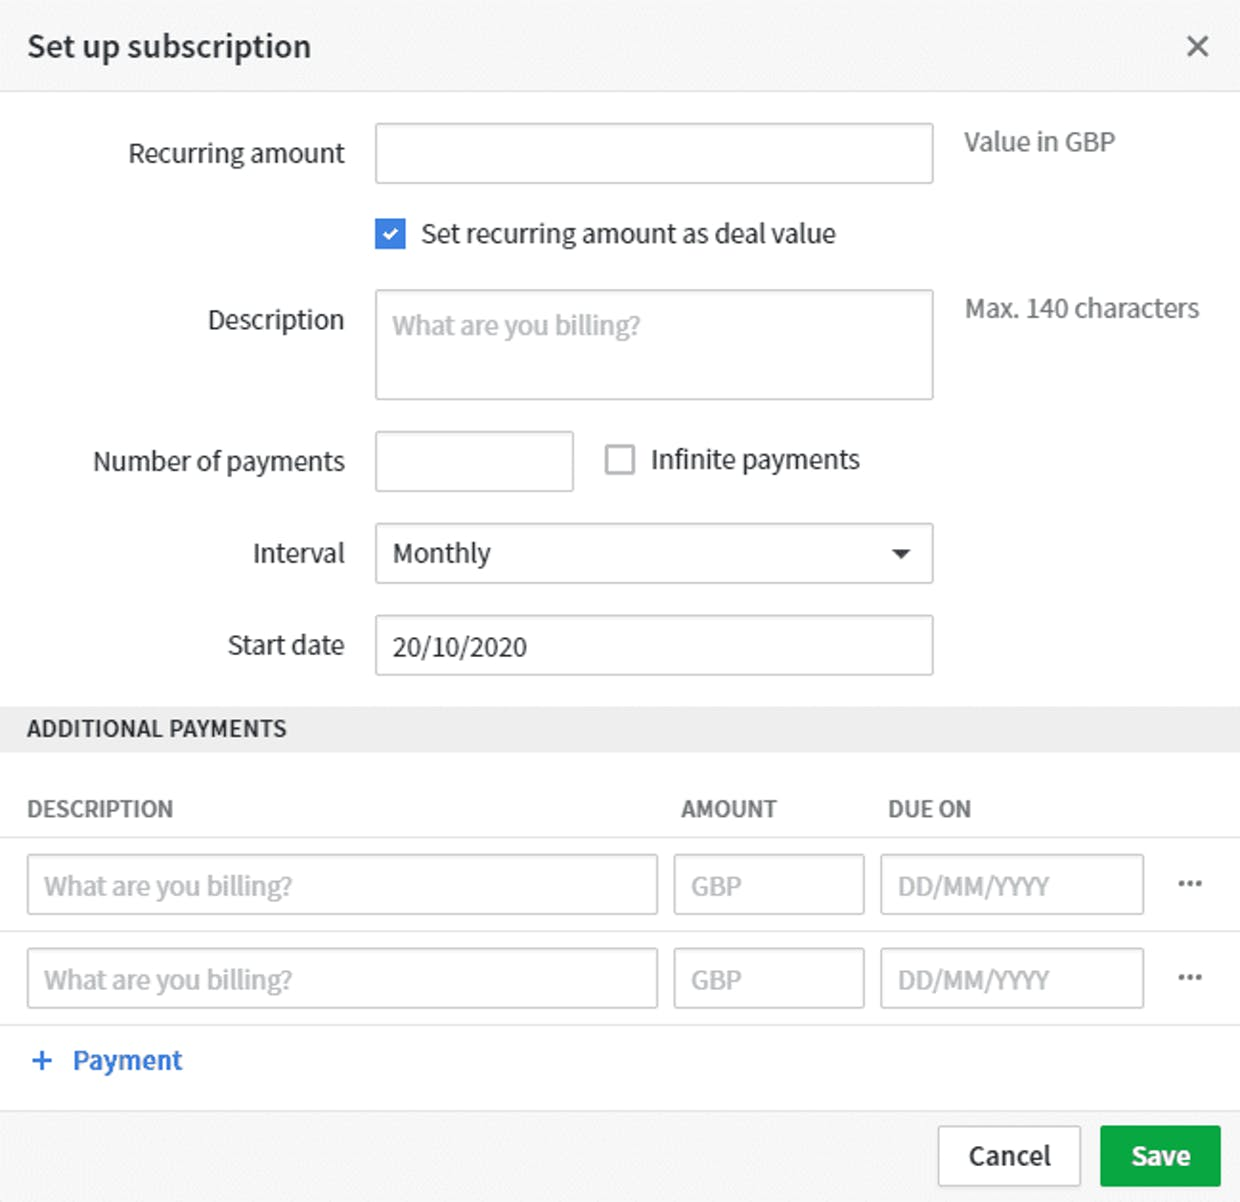 1. Number of payments, Interval and Start date fields editable